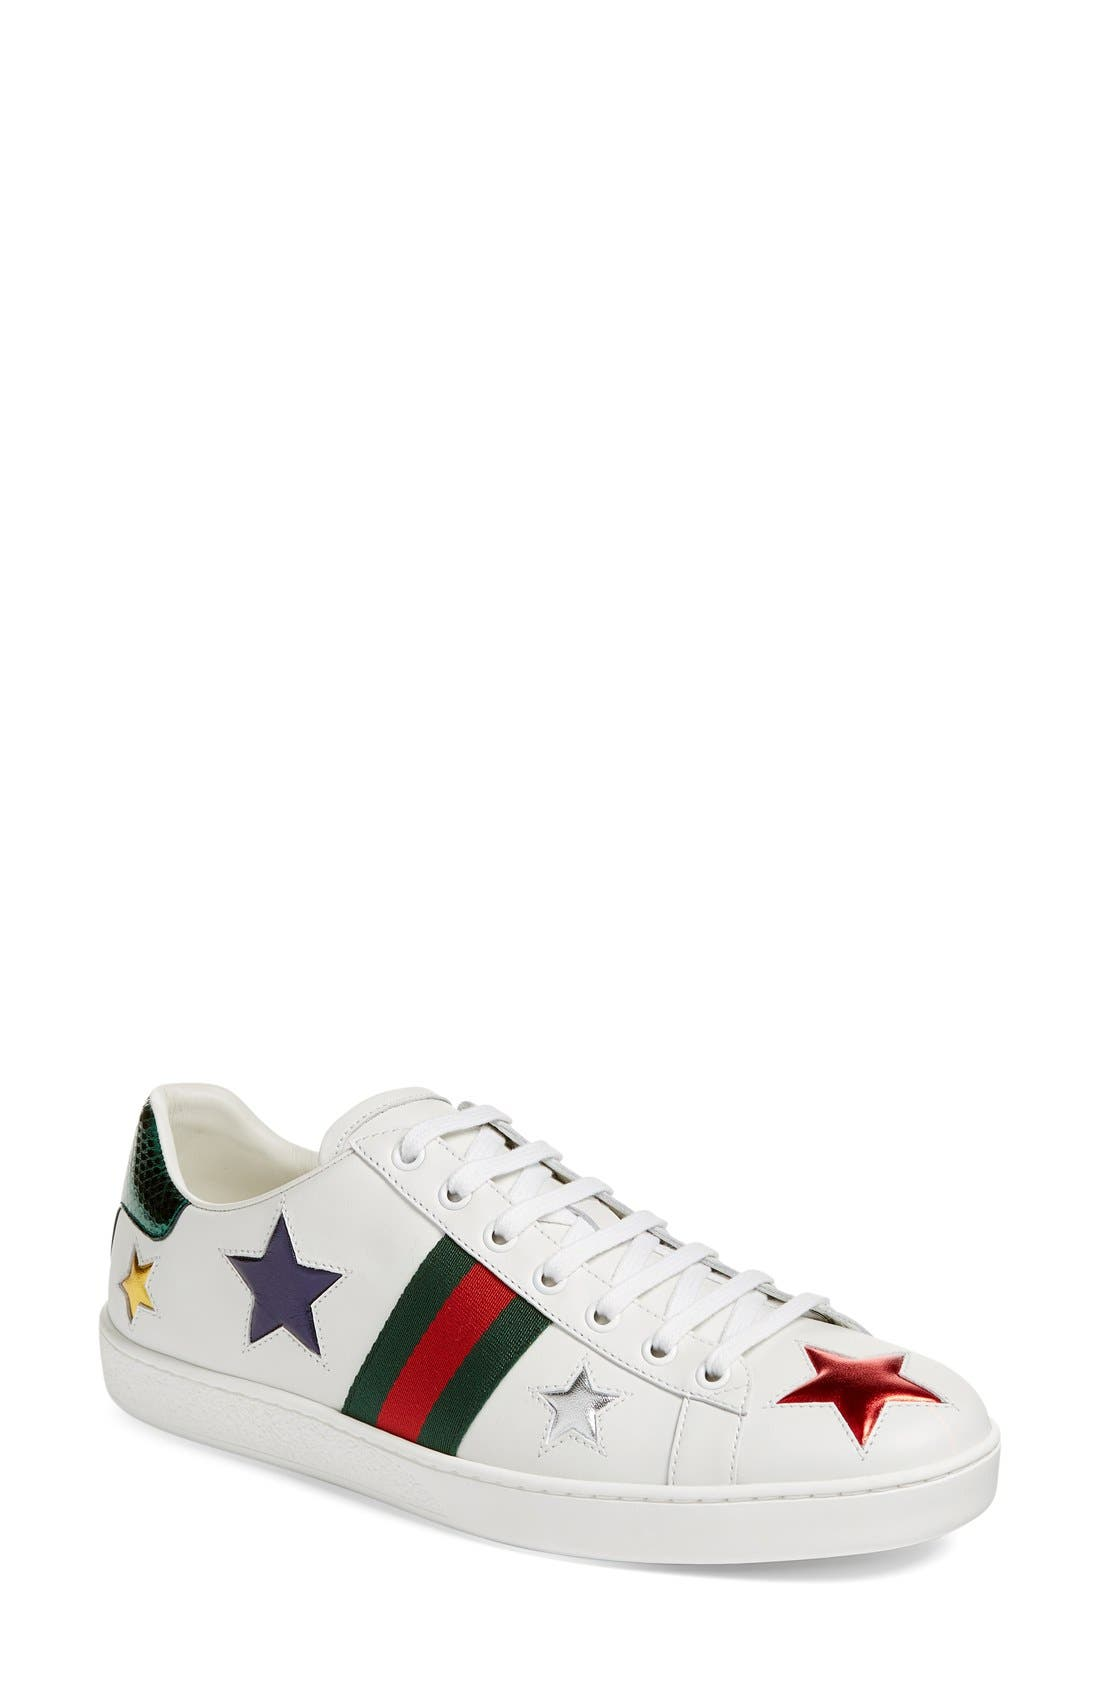 New Ace Star Sneaker,                             Main thumbnail 1, color,                             White Multi